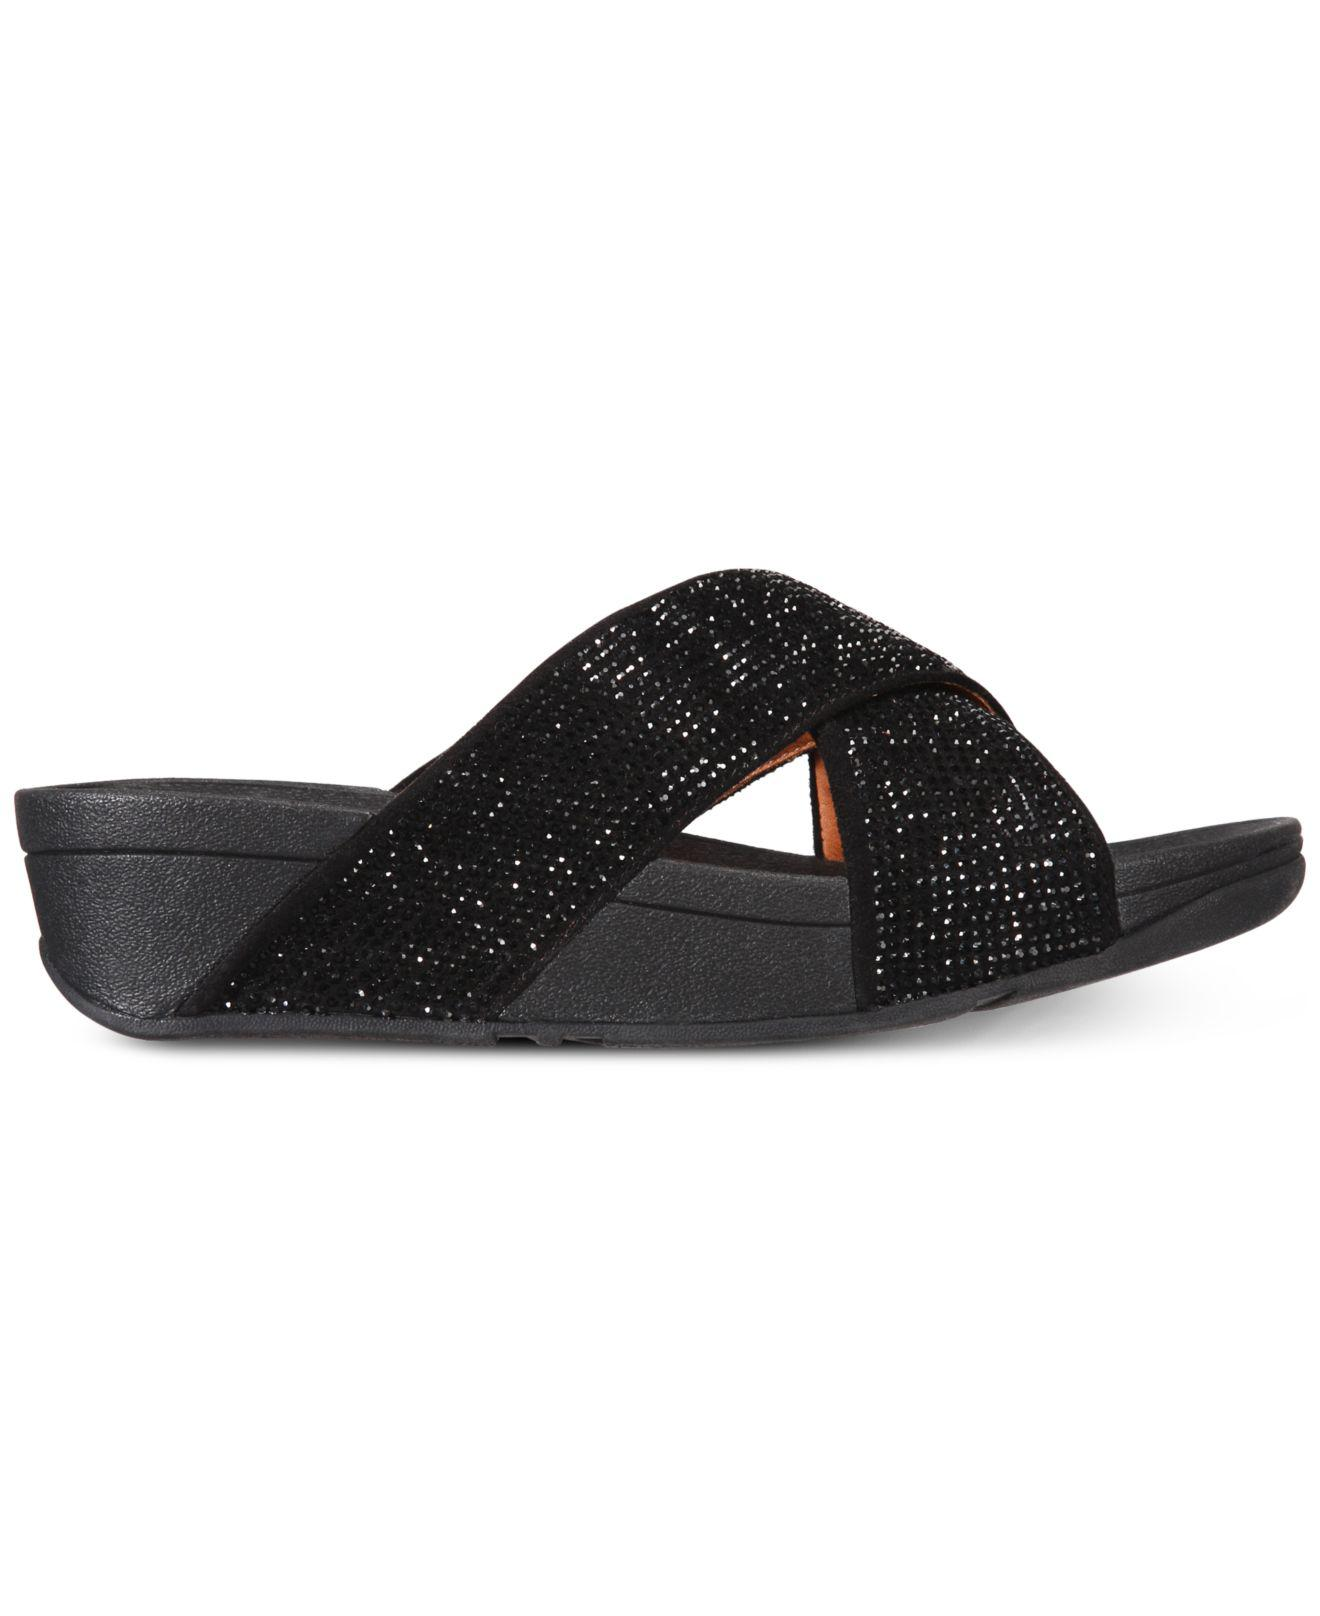 5adcc4bc8c4 Lyst - Fitflop Ritzy Slide Sandals in Black